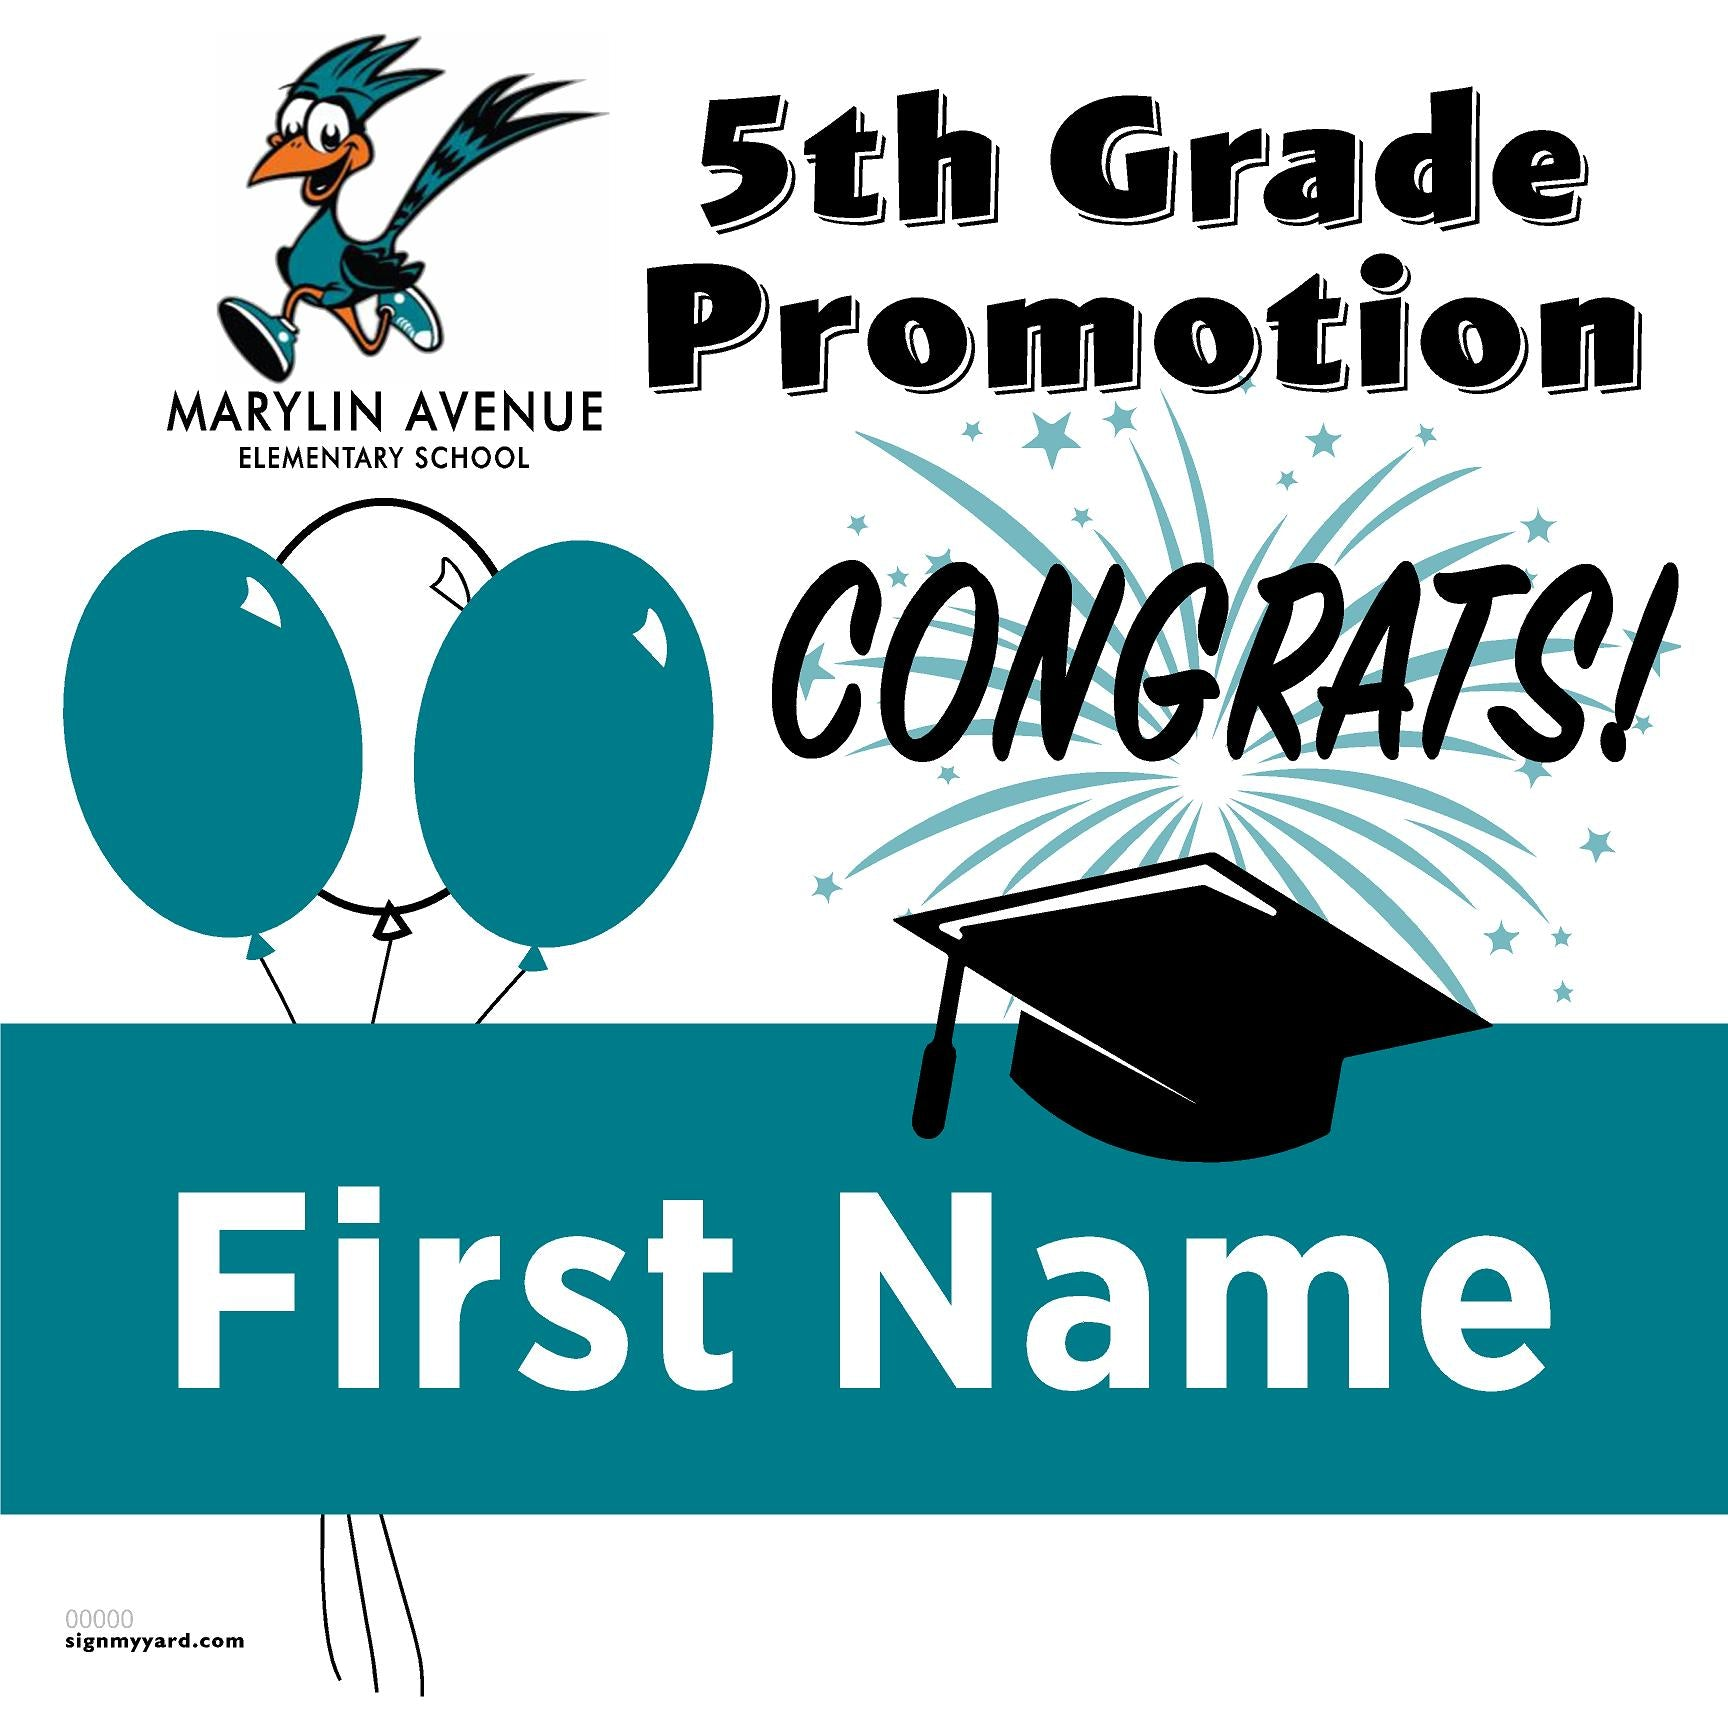 Marylin Avenue Elementary School 5th Grade Promotion 24x24 #shineon2027 Yard Sign (Option A)